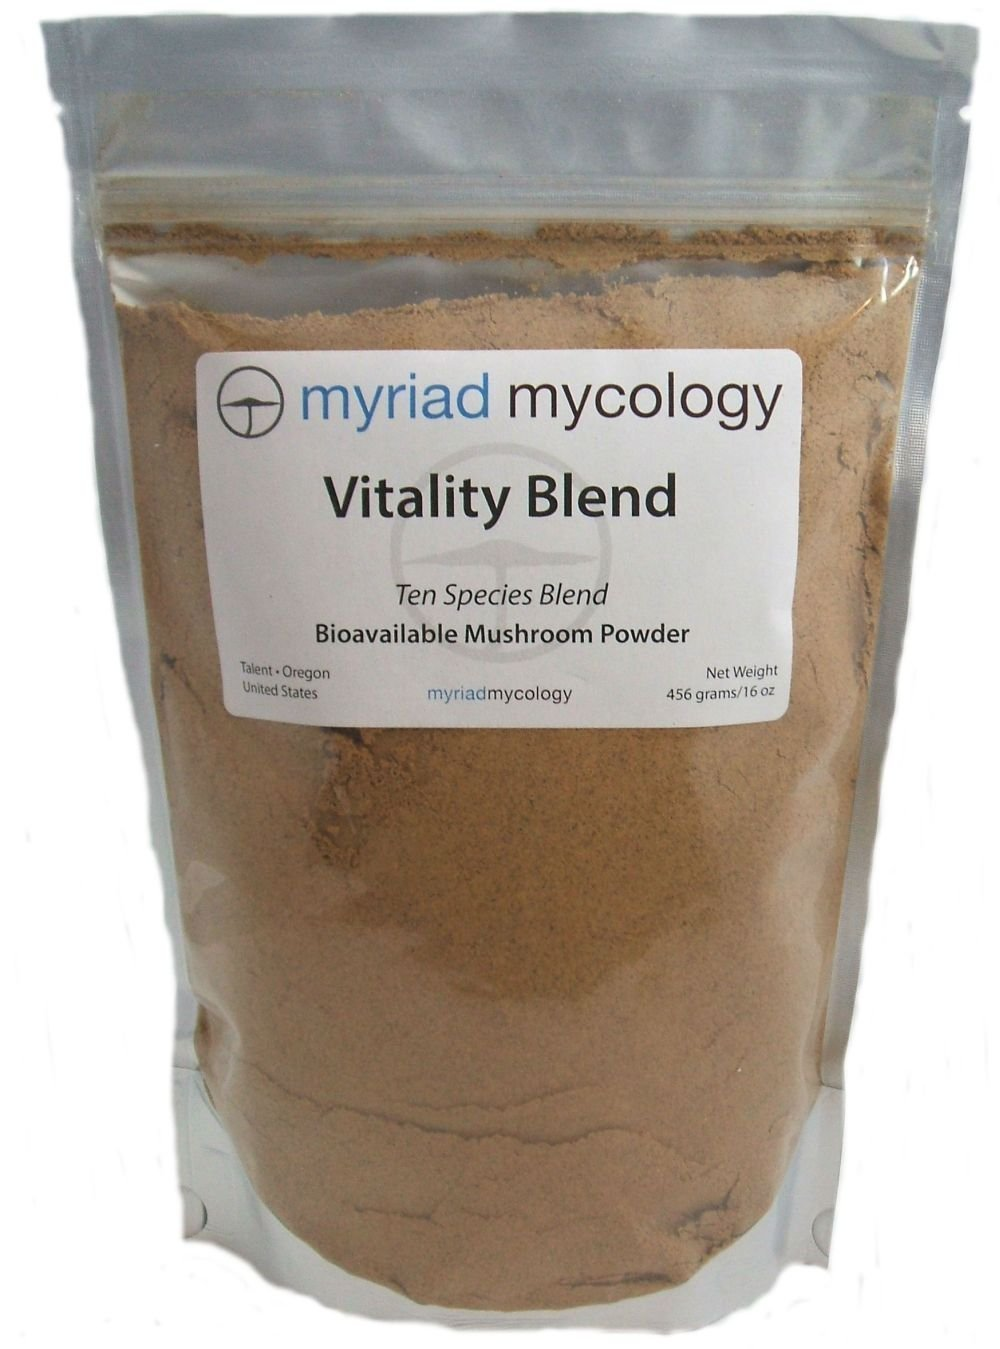 Myriad Mycology Vitality Blend - Mushroom Powder 1 Pound or 456 Grams  10 Medicinal Mushroom Powders.  Lion's Mane, Cordyceps, Turkey Tail, Reishi, Chaga, Maitake, Shiitake, Blazei, Agarikon, and Mesima Sang-Huang